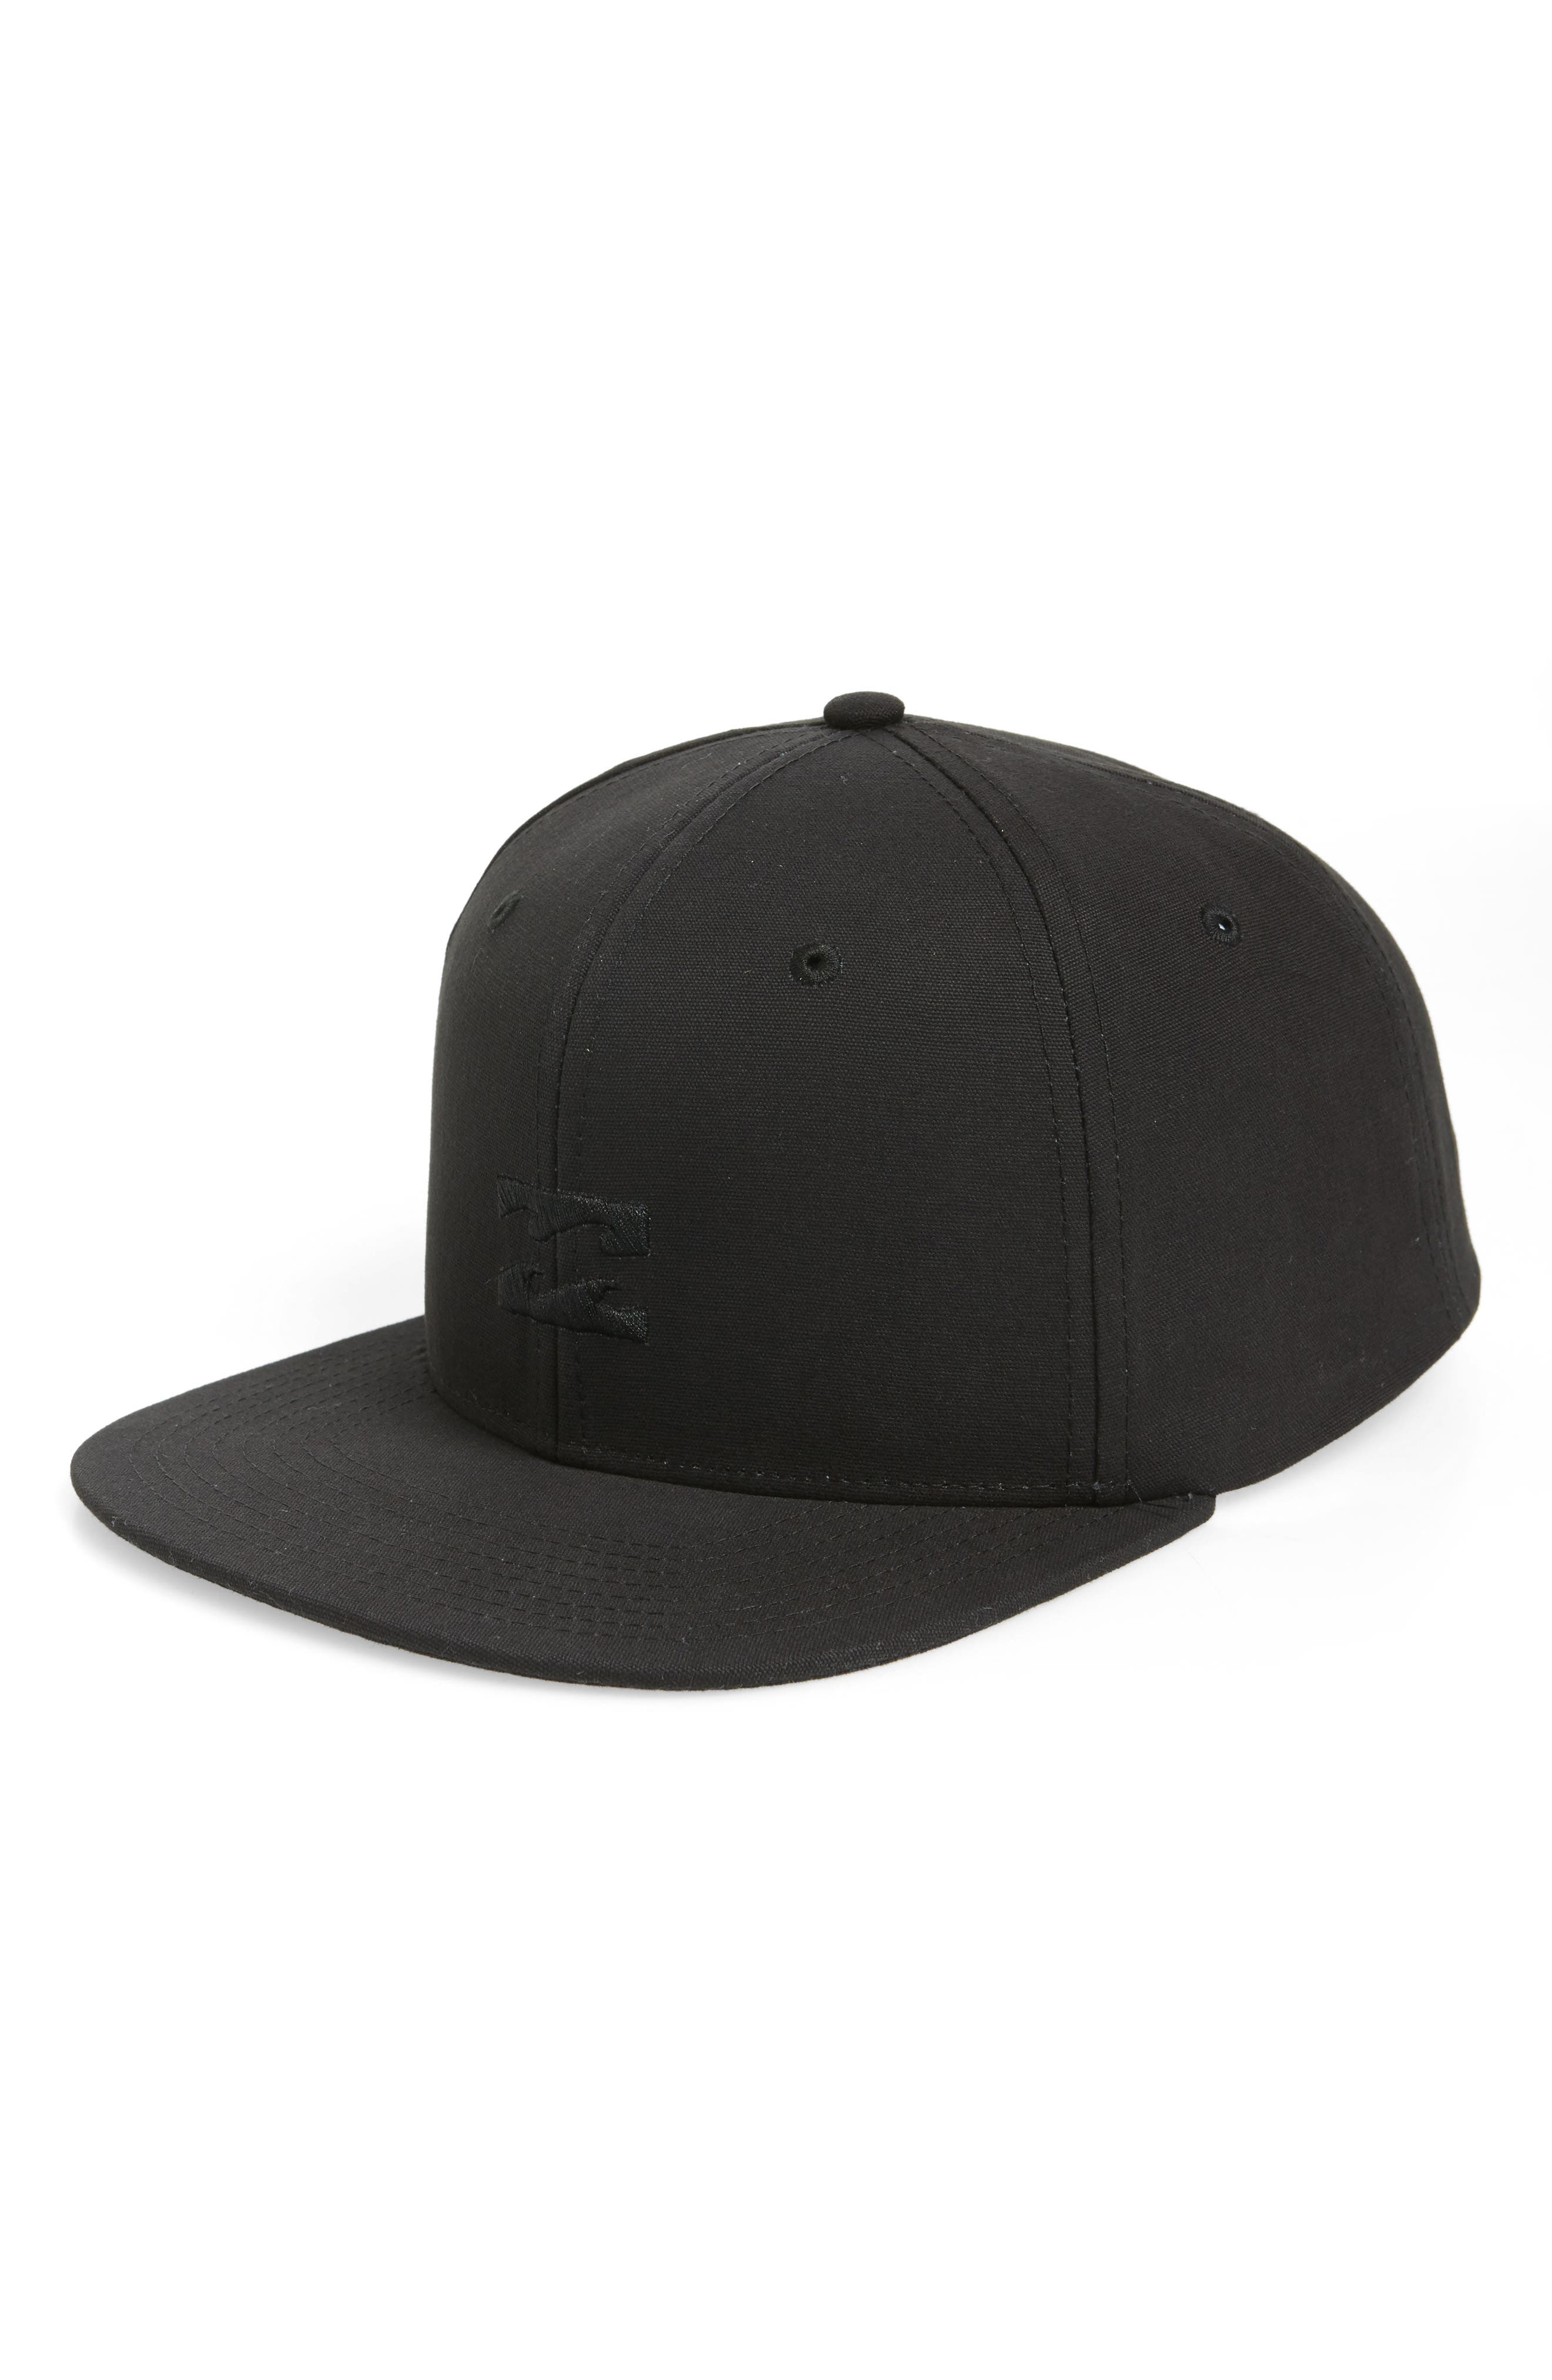 All Day Snapback Baseball Cap,                         Main,                         color, STEALTH